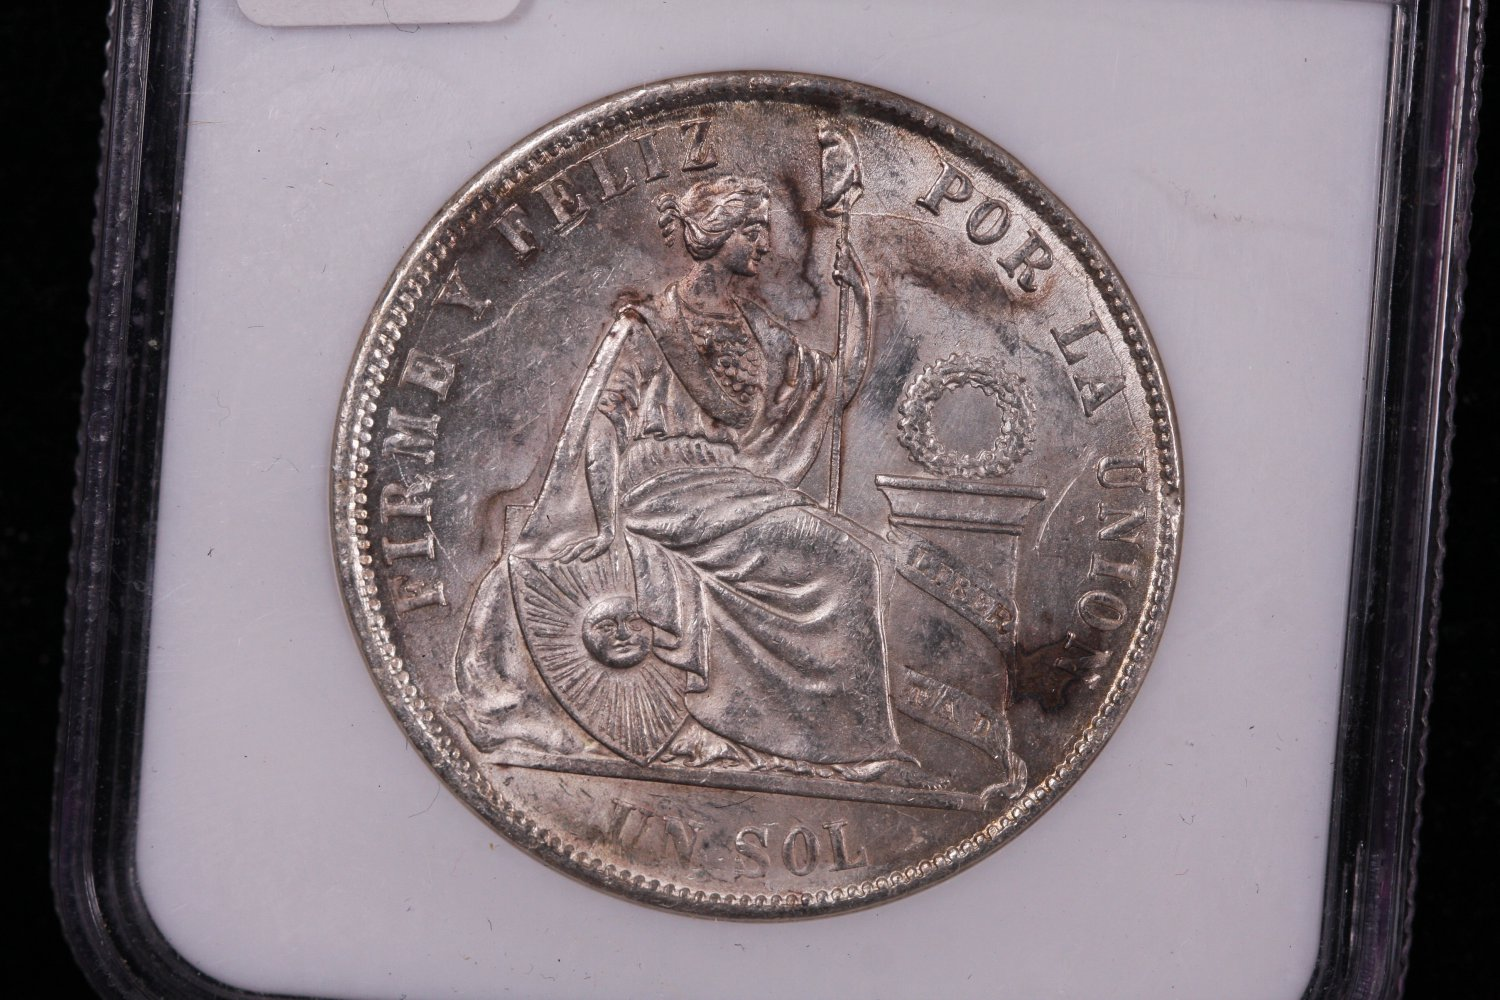 1870 YJ Peru SOL, Nice Early Date Coin. NGC Graded, MS-62.